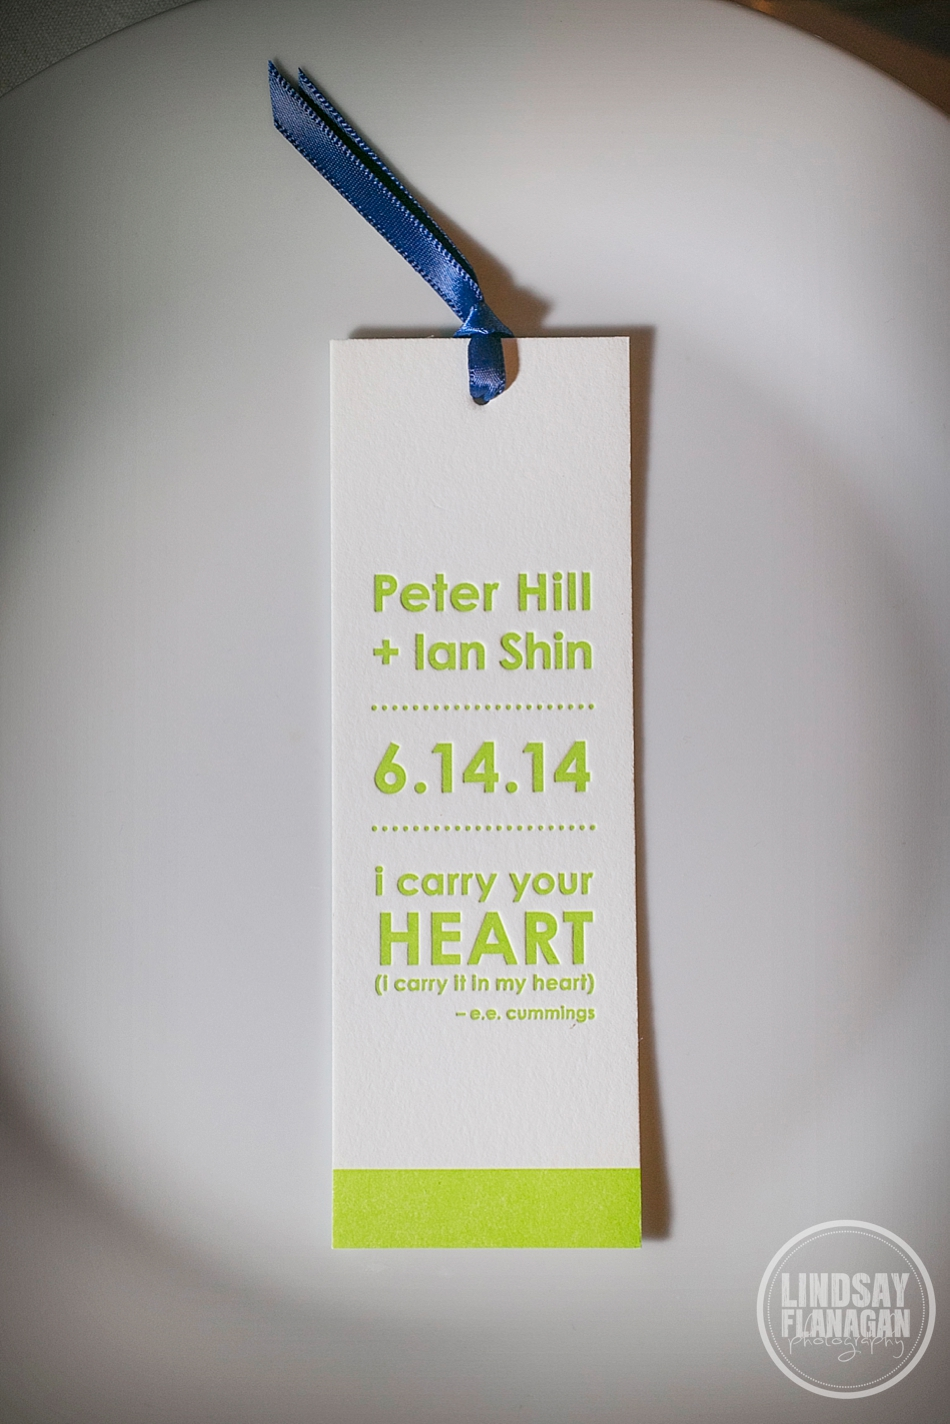 Ian and Peter's  Cambridge Multicultural Arts Center Wedding  | Bookmark Favors by  Ink Print Letterpress